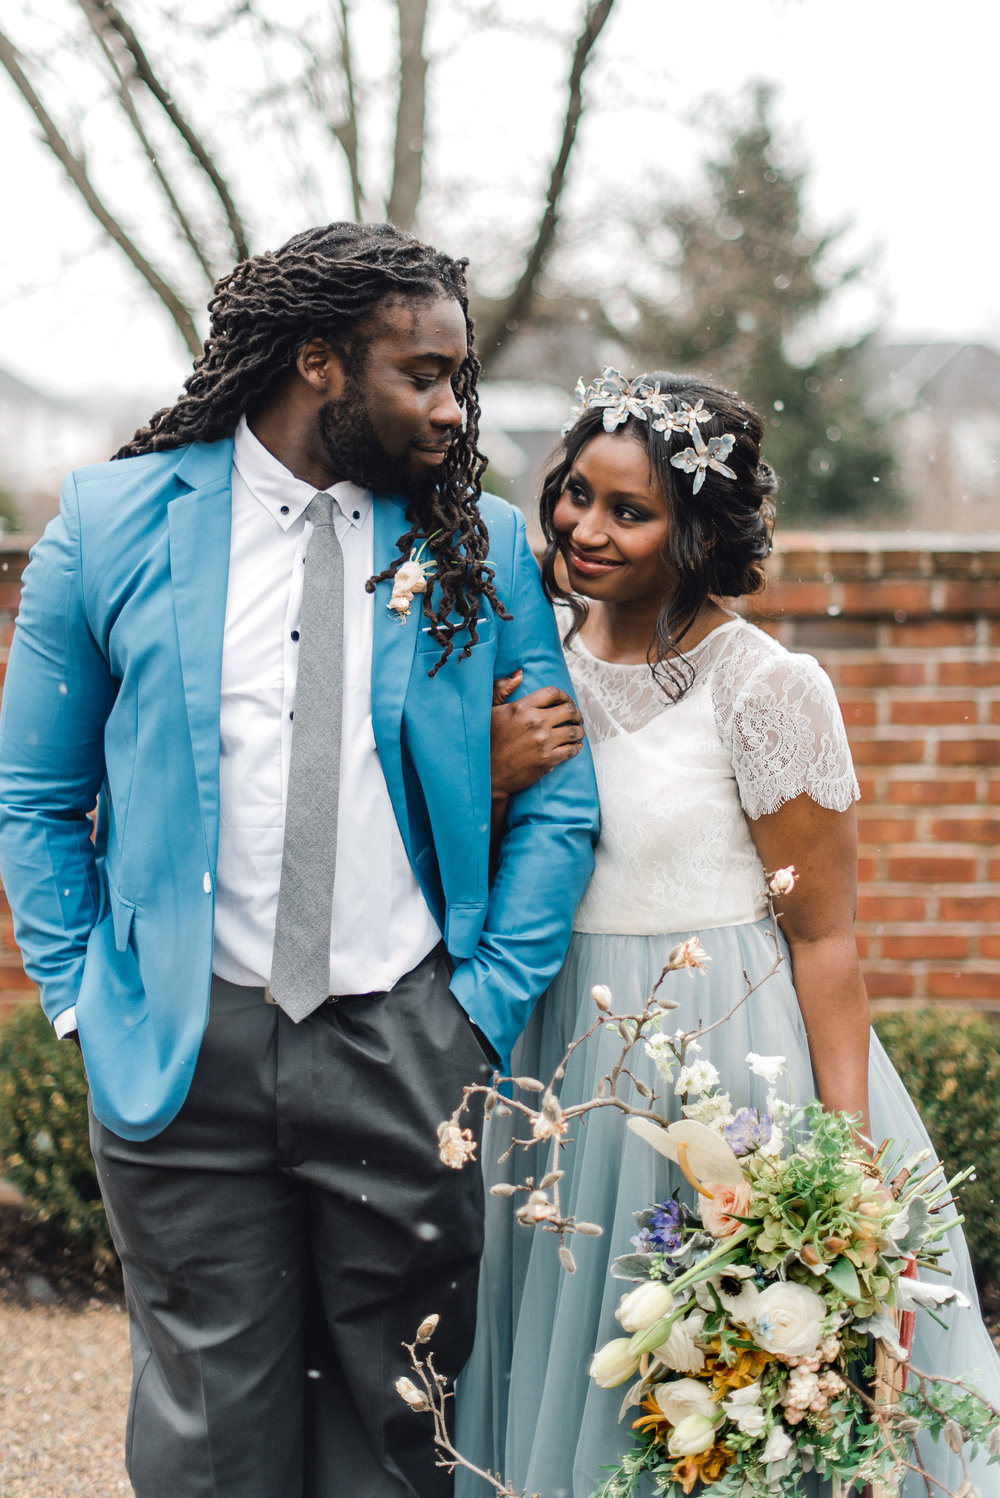 Bride and groom pose for outdoor wedding photos as it snows at wedding venue for Pablo Neruda enchanting garden styled shoot planned by Exhale Events. Get inspired at exhale-events.com!